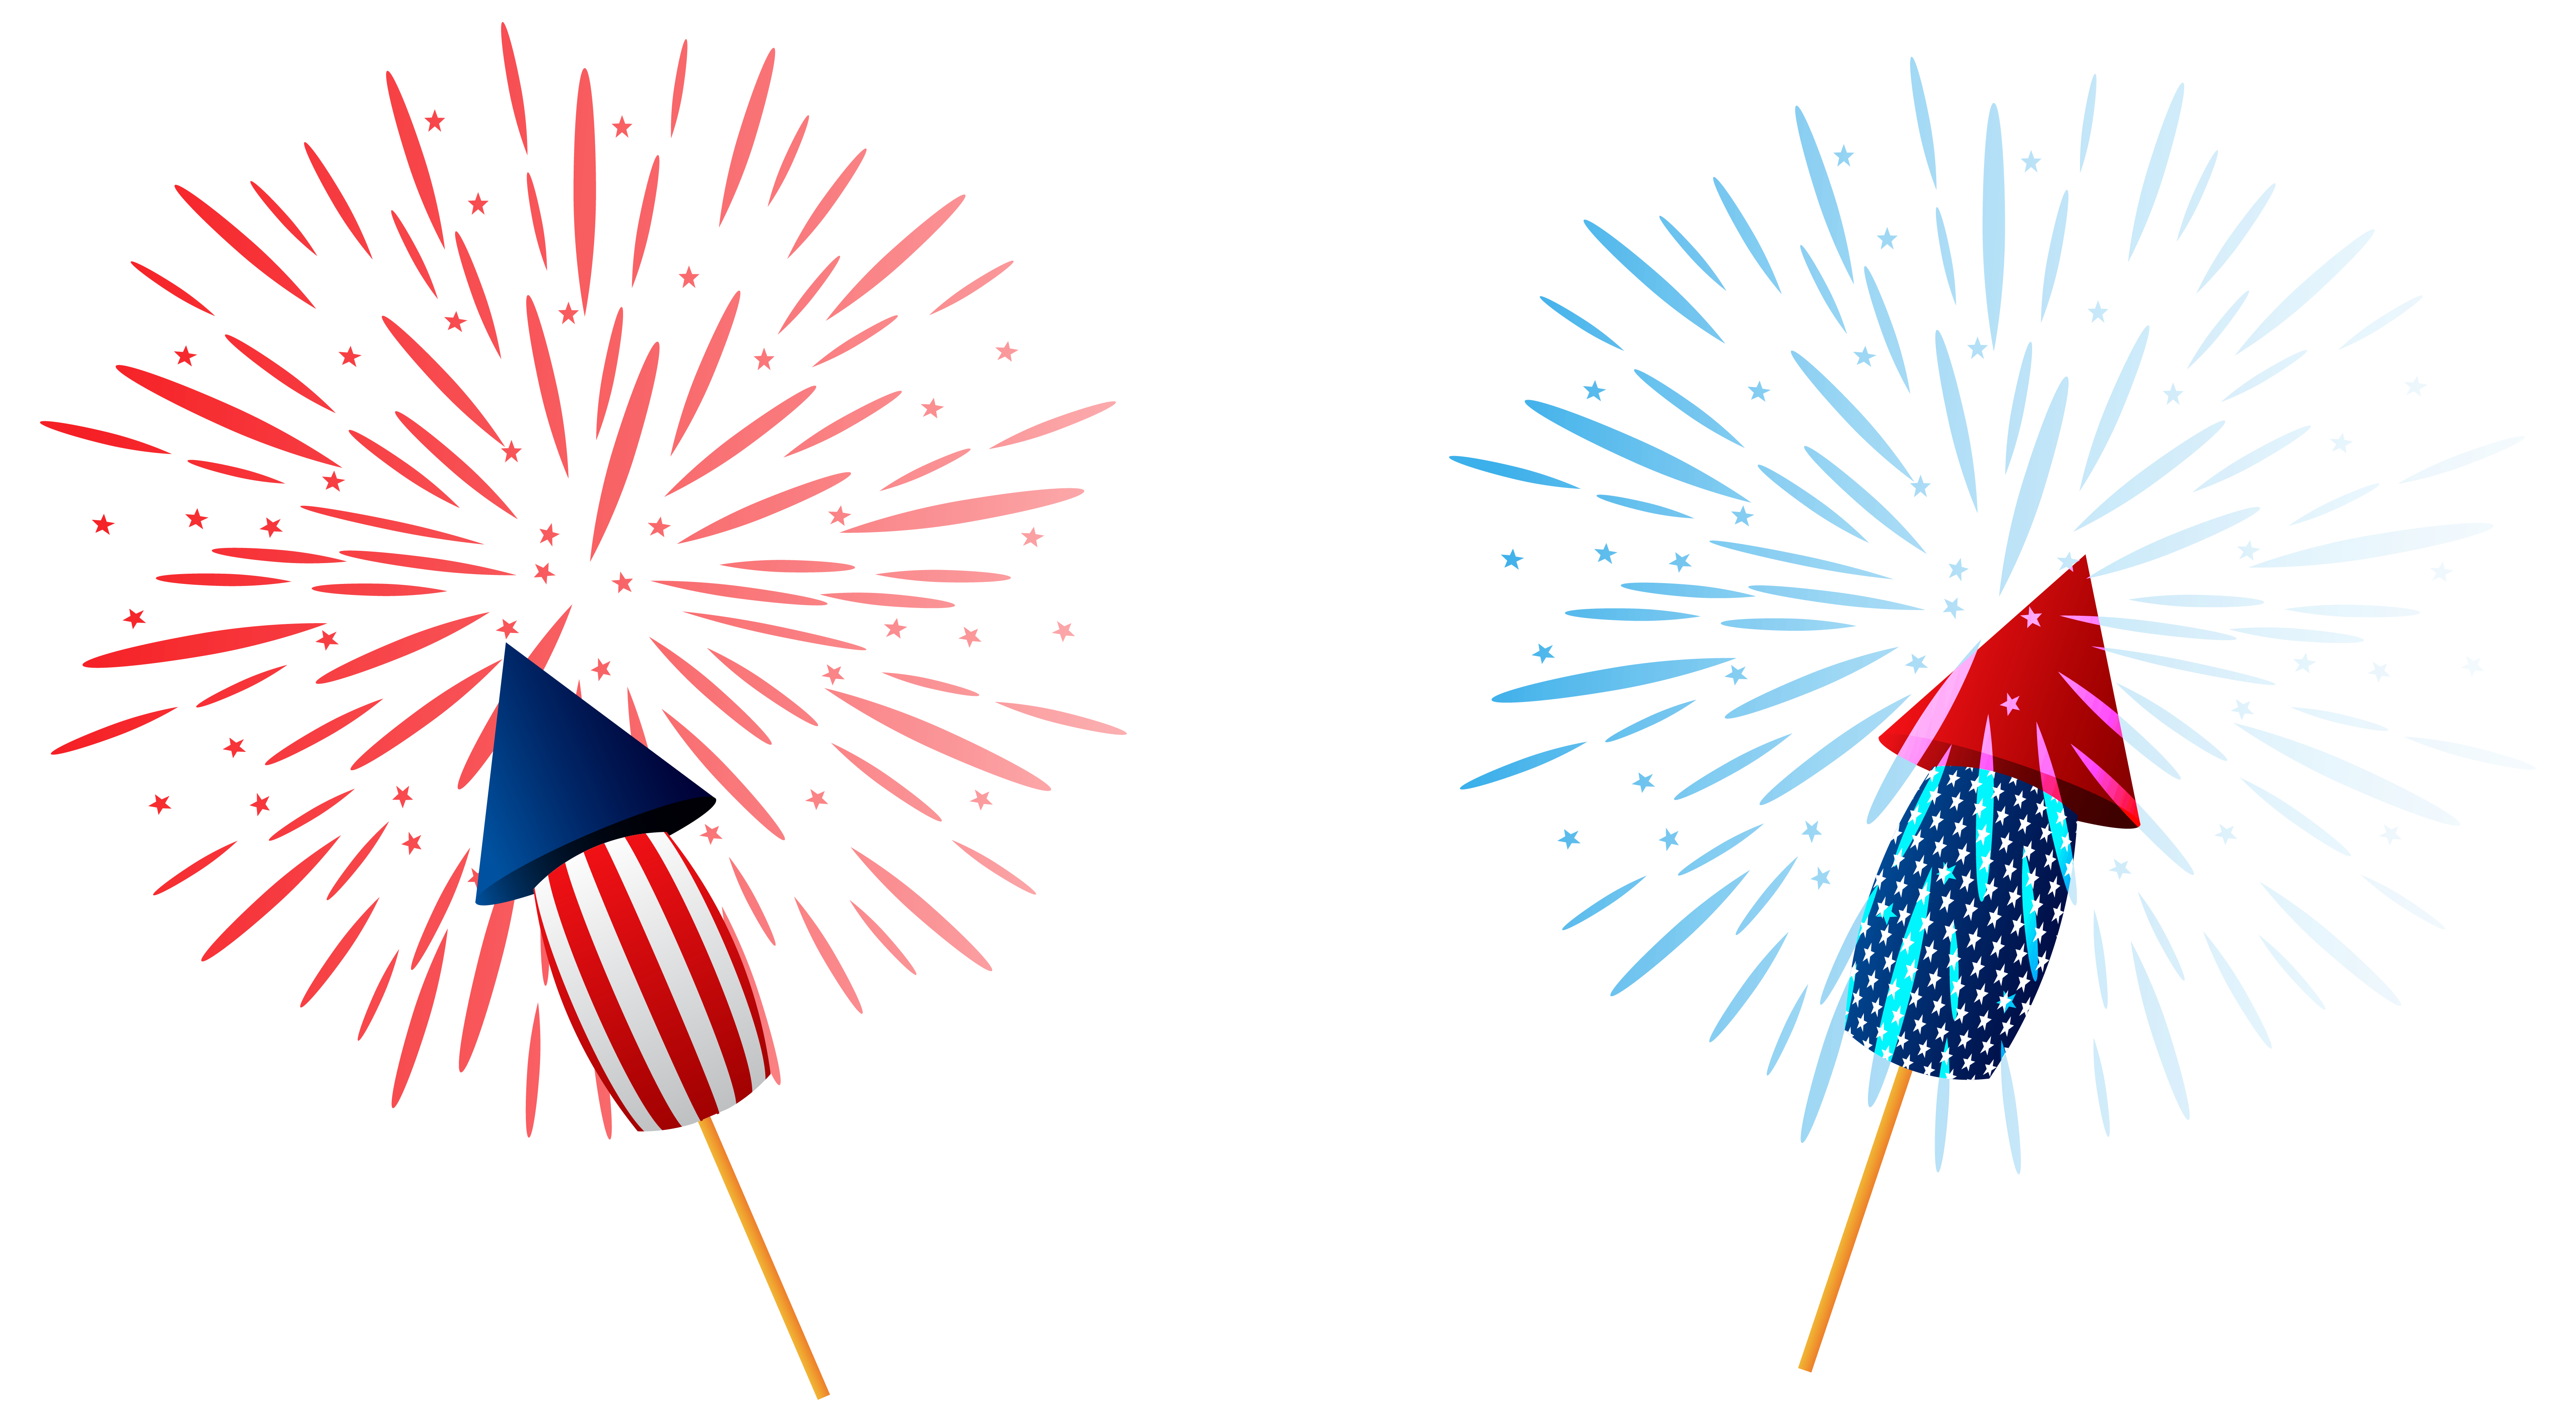 Free Sparkler Cliparts, Download Free Clip Art, Free Clip.